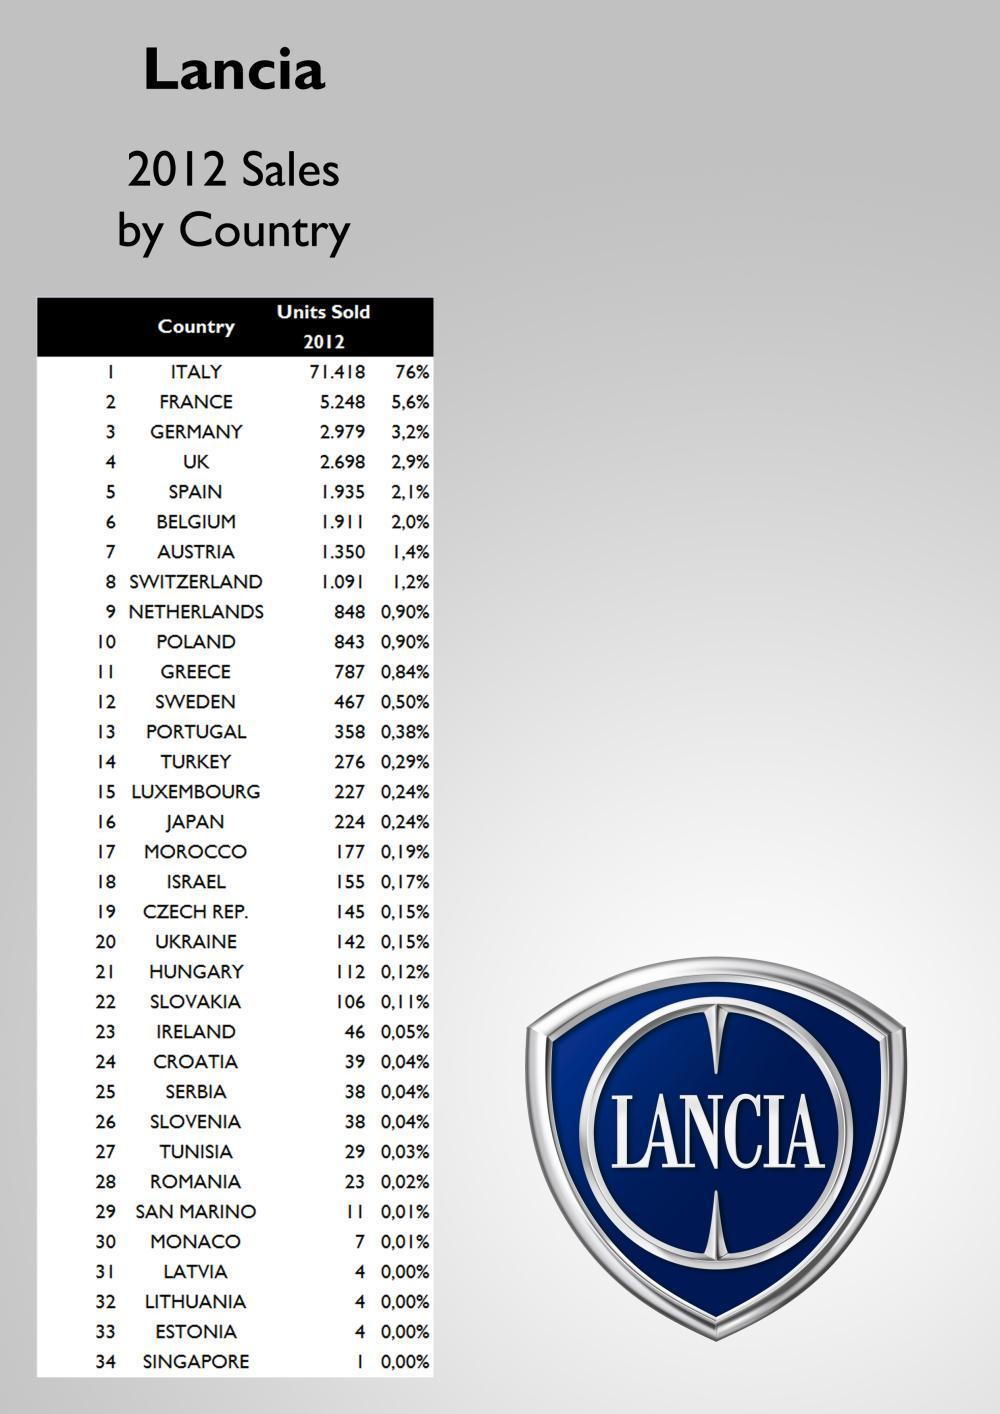 lancia-sales-by-country-2012.jpg